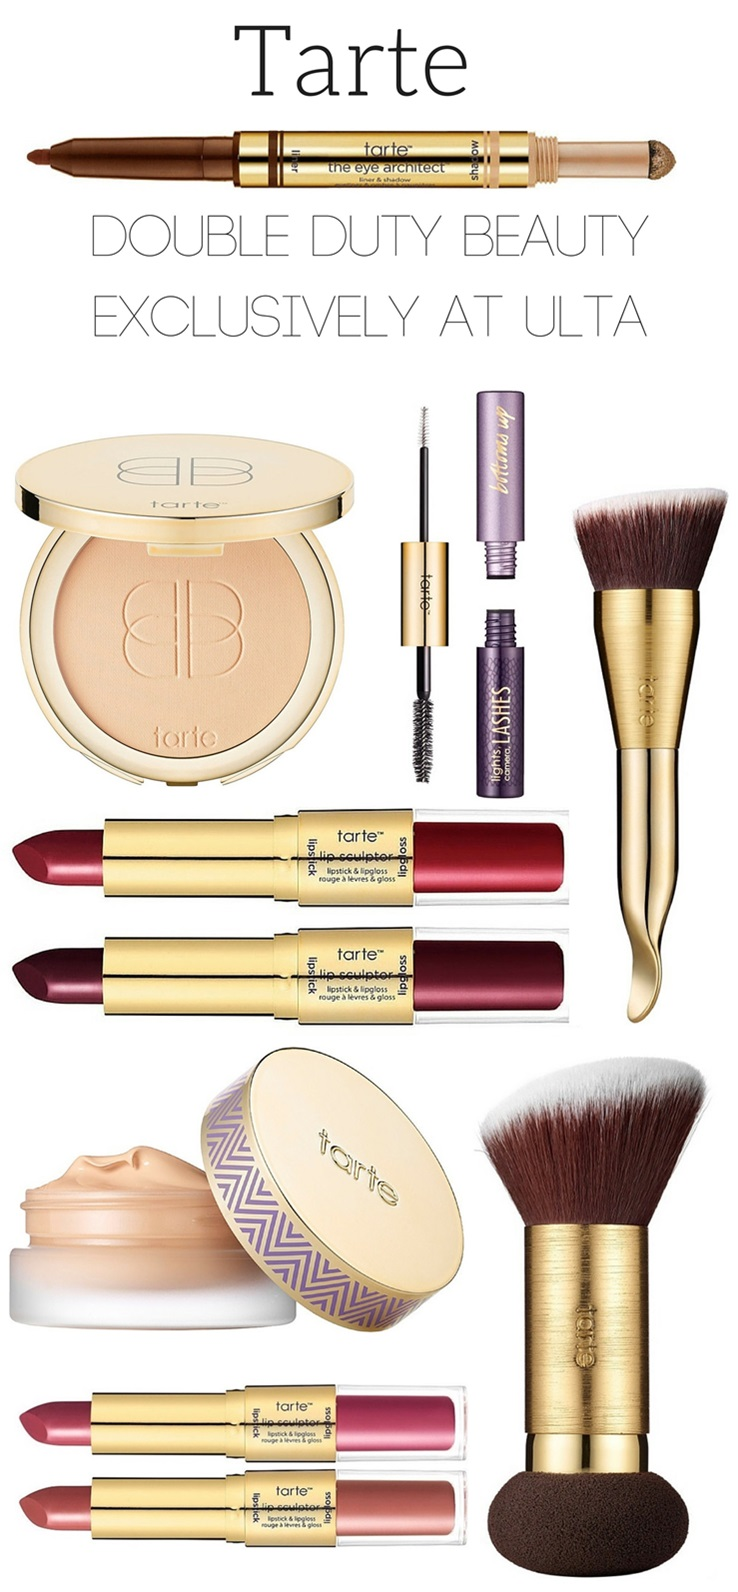 Tarte Double Duty Beauty Launching at Ulta 2/21